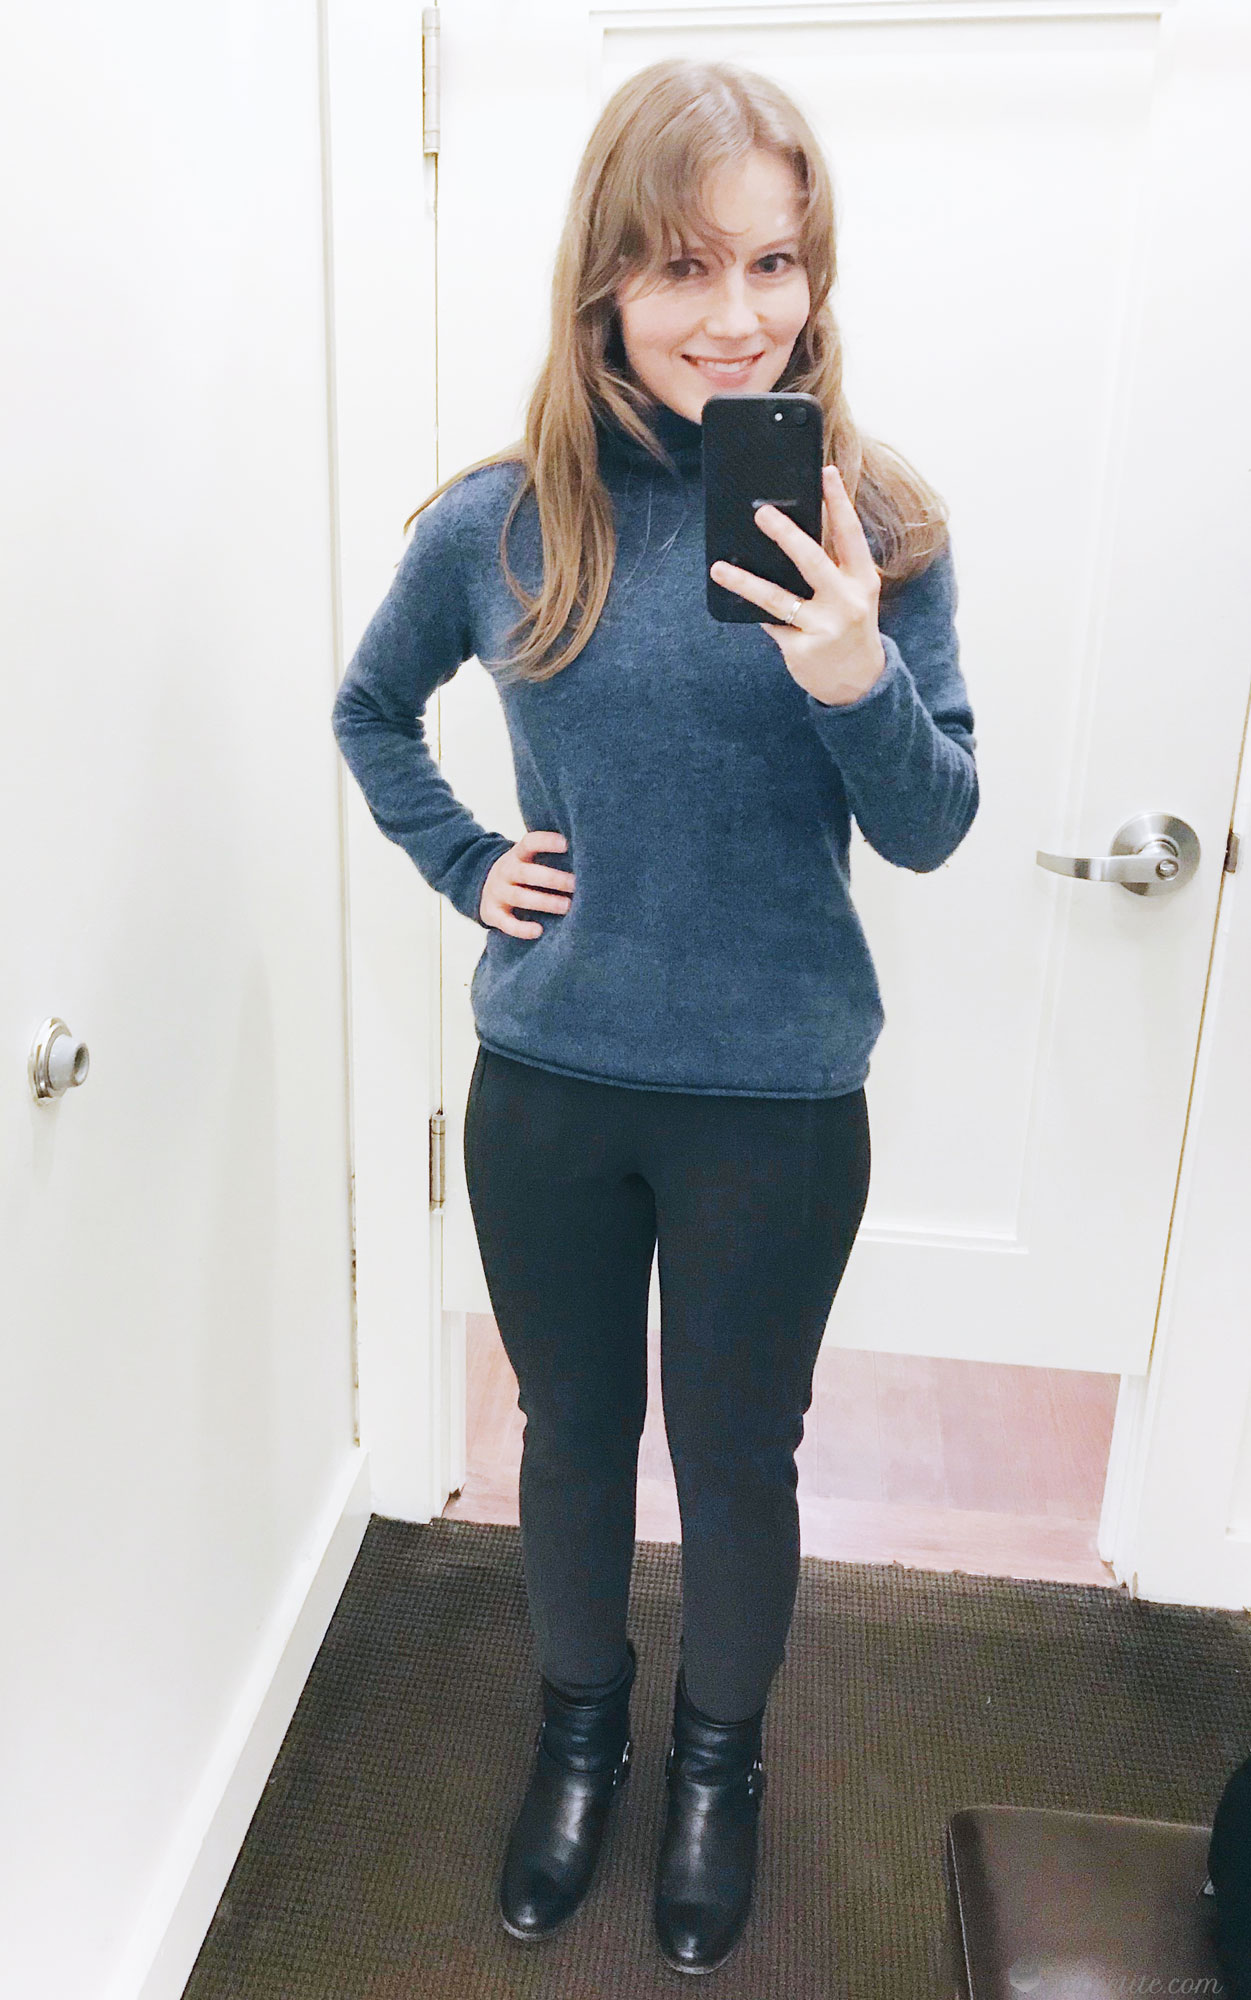 Devon Legging-Fit  Washable Heathered Bi-Stretch Ankle Pant in 00 Petite - here's how they look paired with a sweater (currently sold out, but it's this M BY MAGASCHONI petite  Turtleneck )